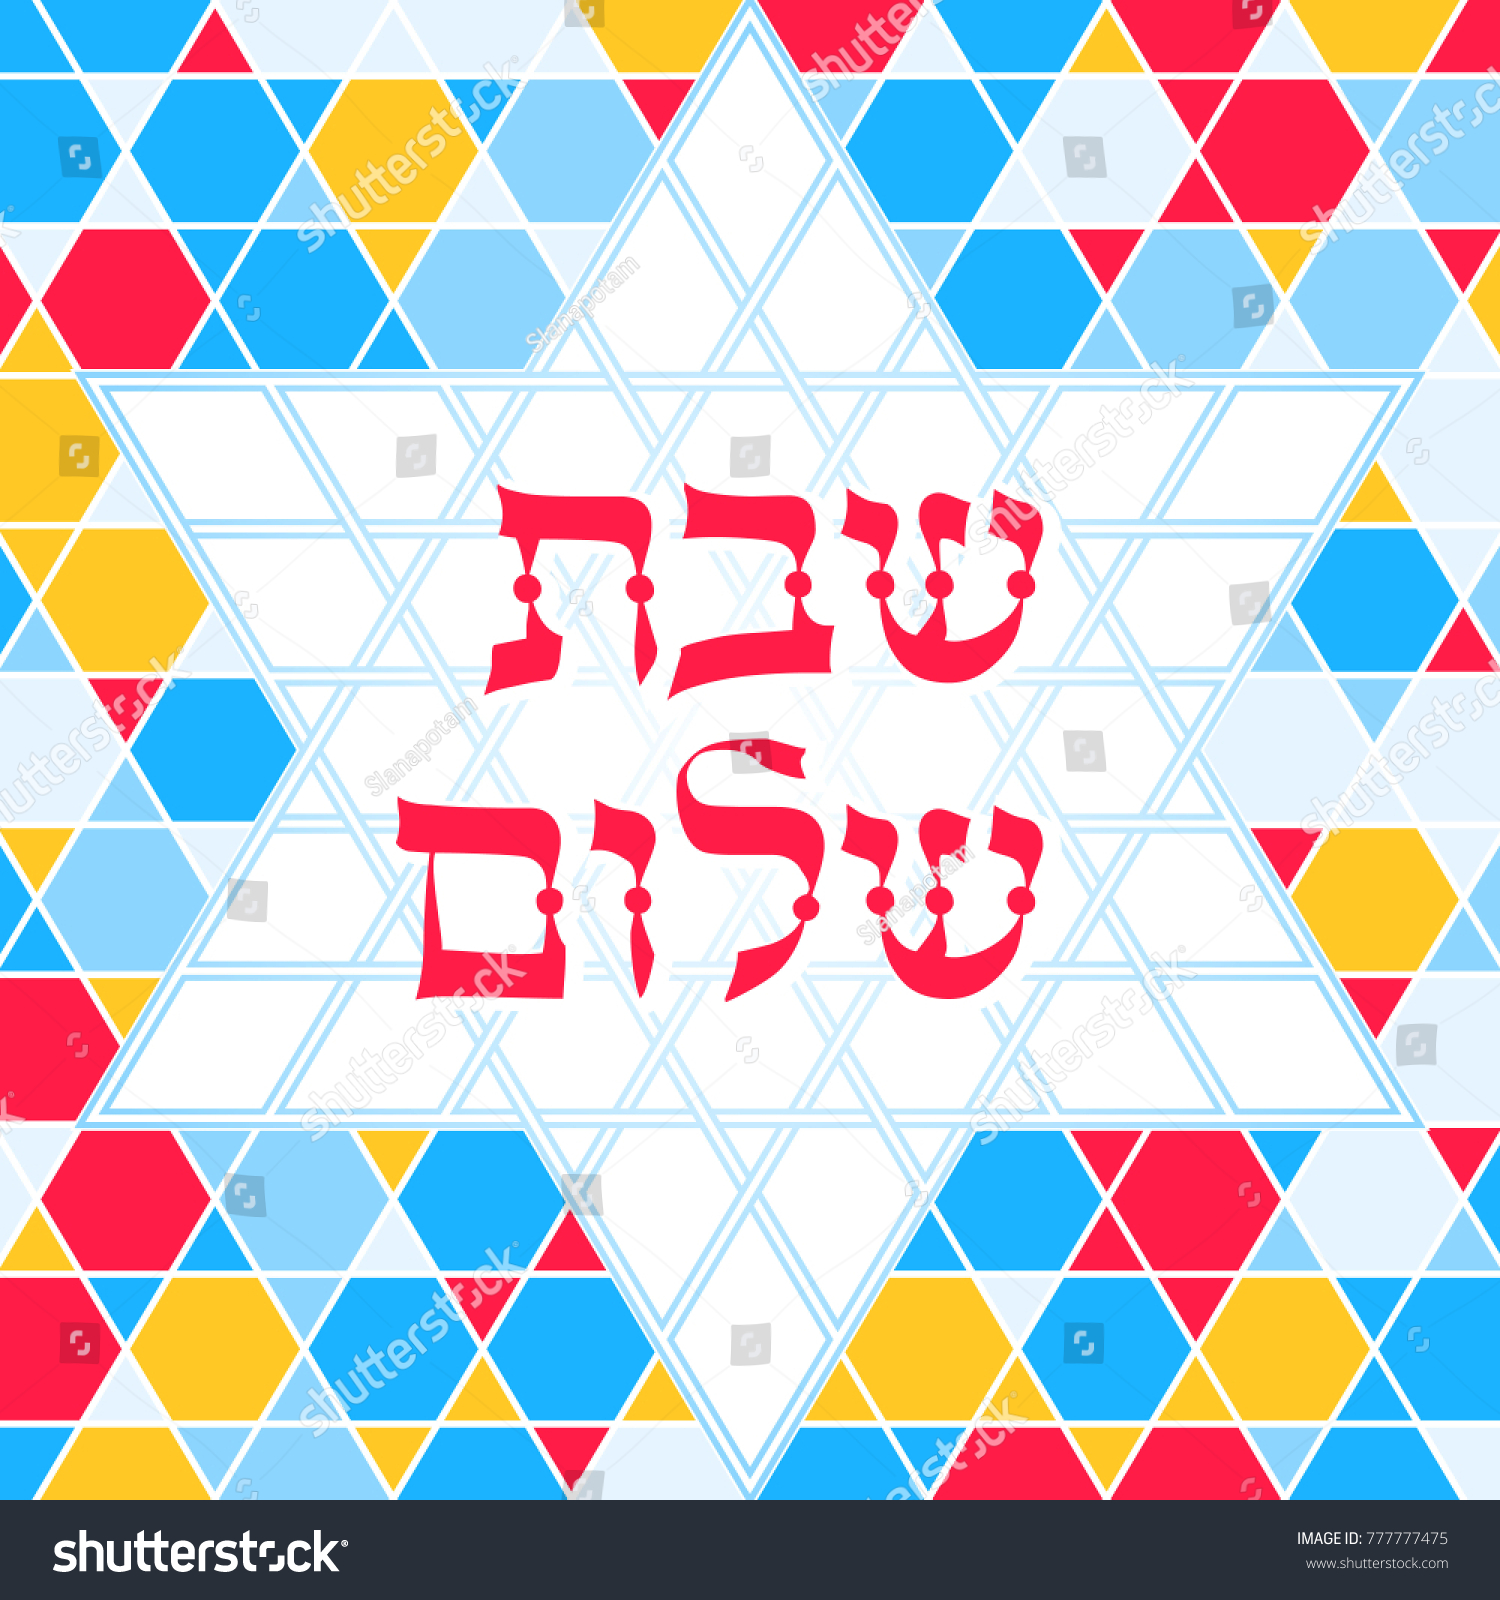 Colorful Shabbat Shalom Greeting Card Vector Stock Vector Royalty